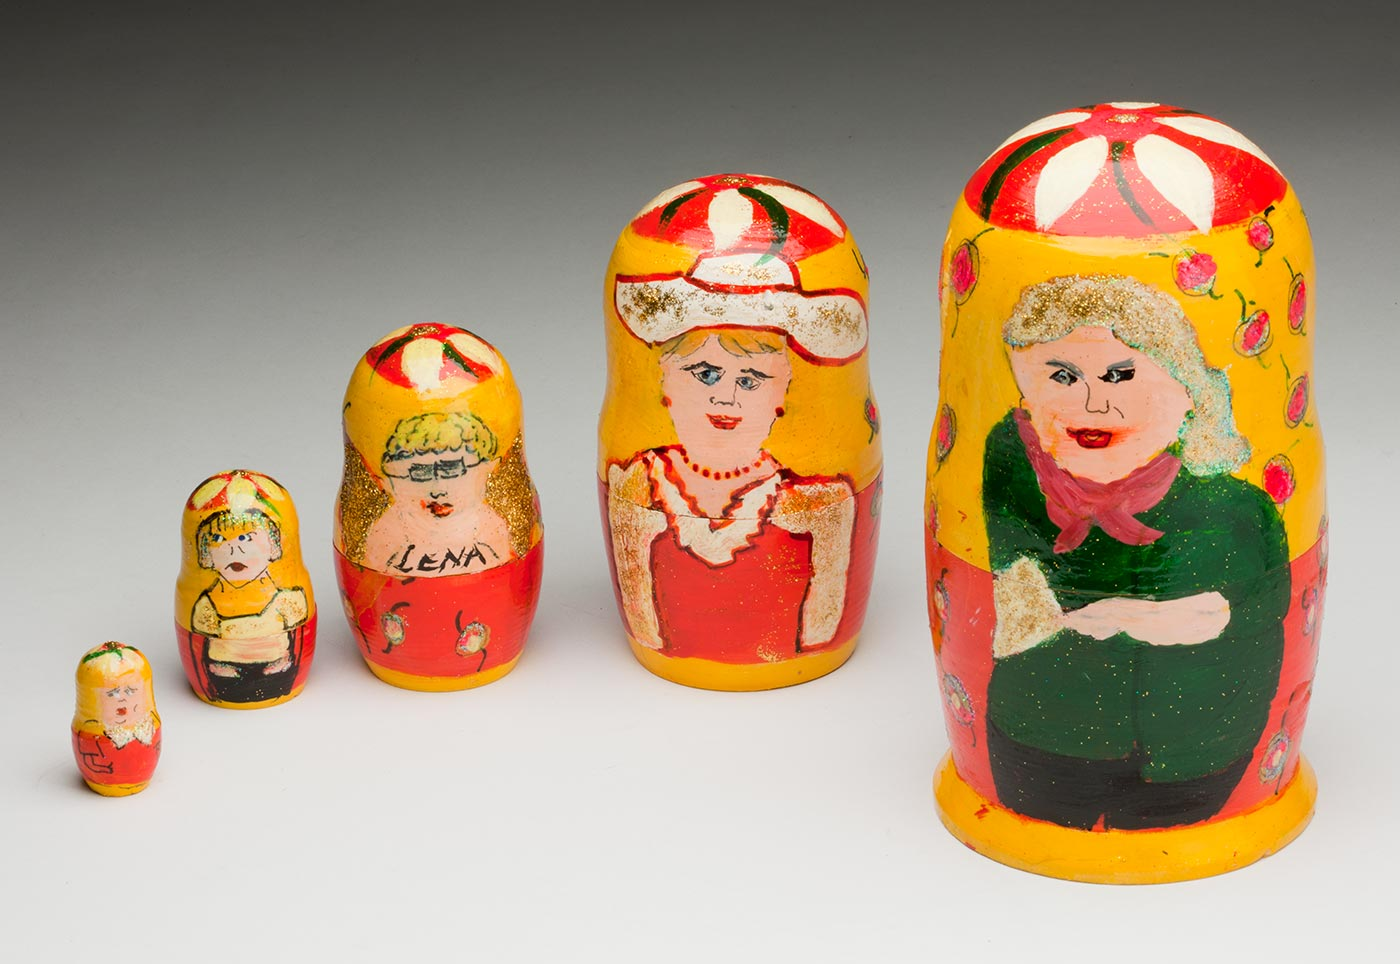 Five babushka dolls, arranged from smallest to largest from the left. Far left shows a small girl in a red top with white collar. Second from left shows an older girl wearing a white top and black pants. The third doll has short hair and glasses and 'LENA' handpainted on the chest. The fourth doll shows a woman wearing a red dress with white collar and hat, and the fifth shows a woman wearing a green shirt and red scarf. Gold glitter has been used to decorate the dolls. - click to view larger image